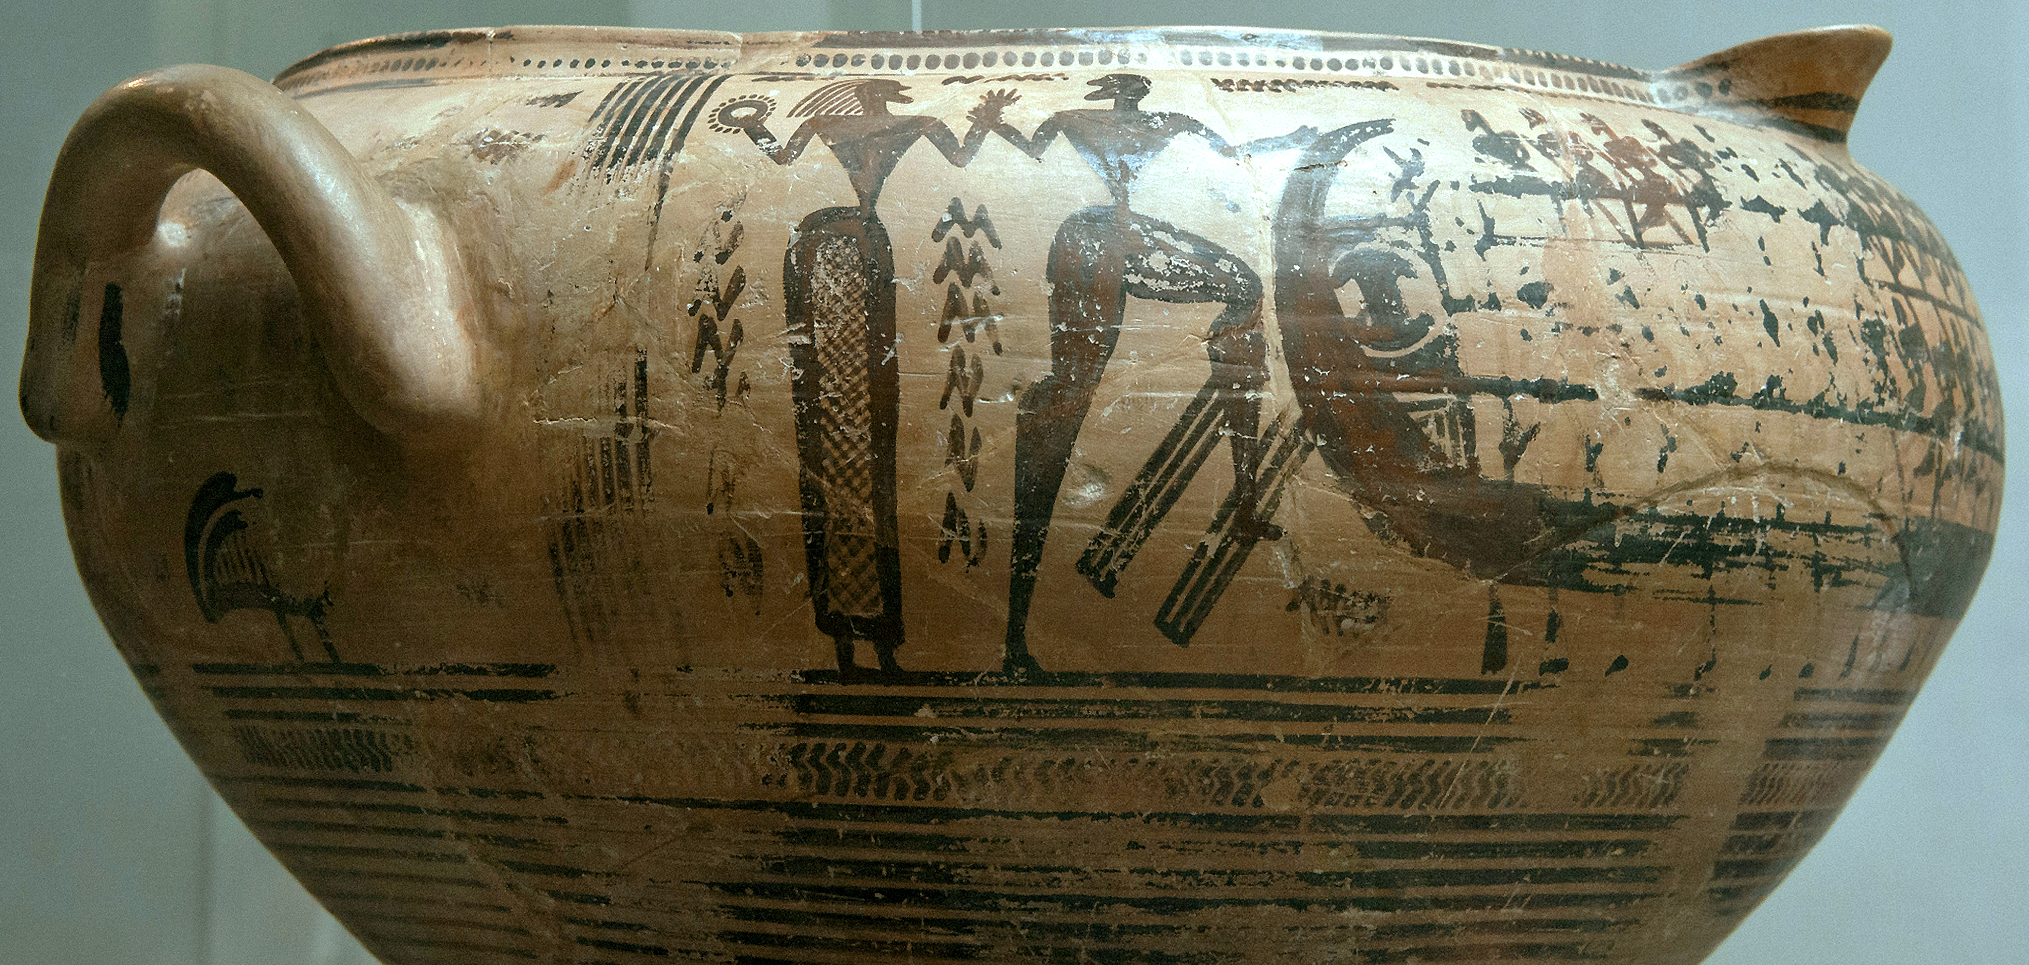 Late Geometric Attic spouted krater (vessel for mixing water and wine), possibly from Thebes, c. 730-720 B.C.E., 30.5 cm high (The British Museum, London), photo: Egisto Sani CC BY-NC-SA 2.0